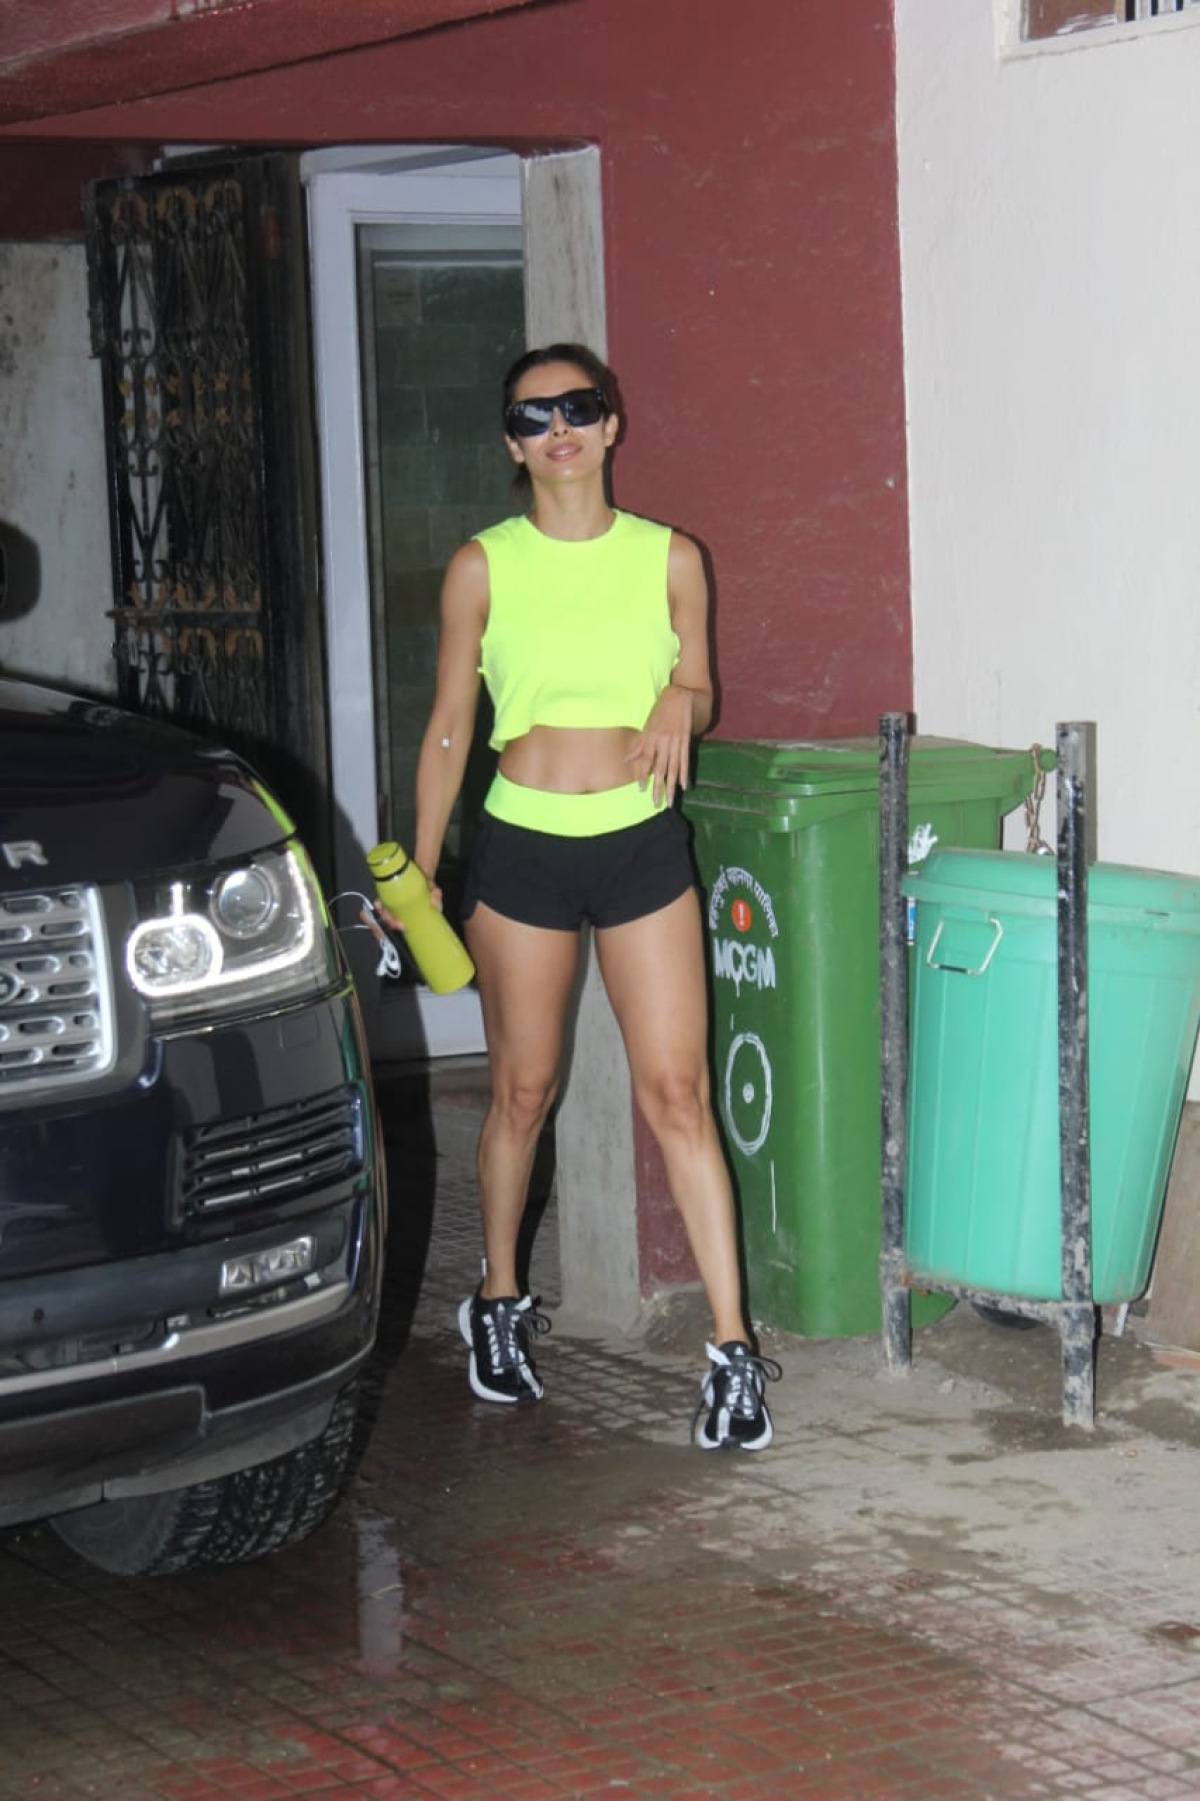 Malaika Arora Khan stepped out of the gym in a neon crop top and black shorts, sporting her abs as she walked to her car.